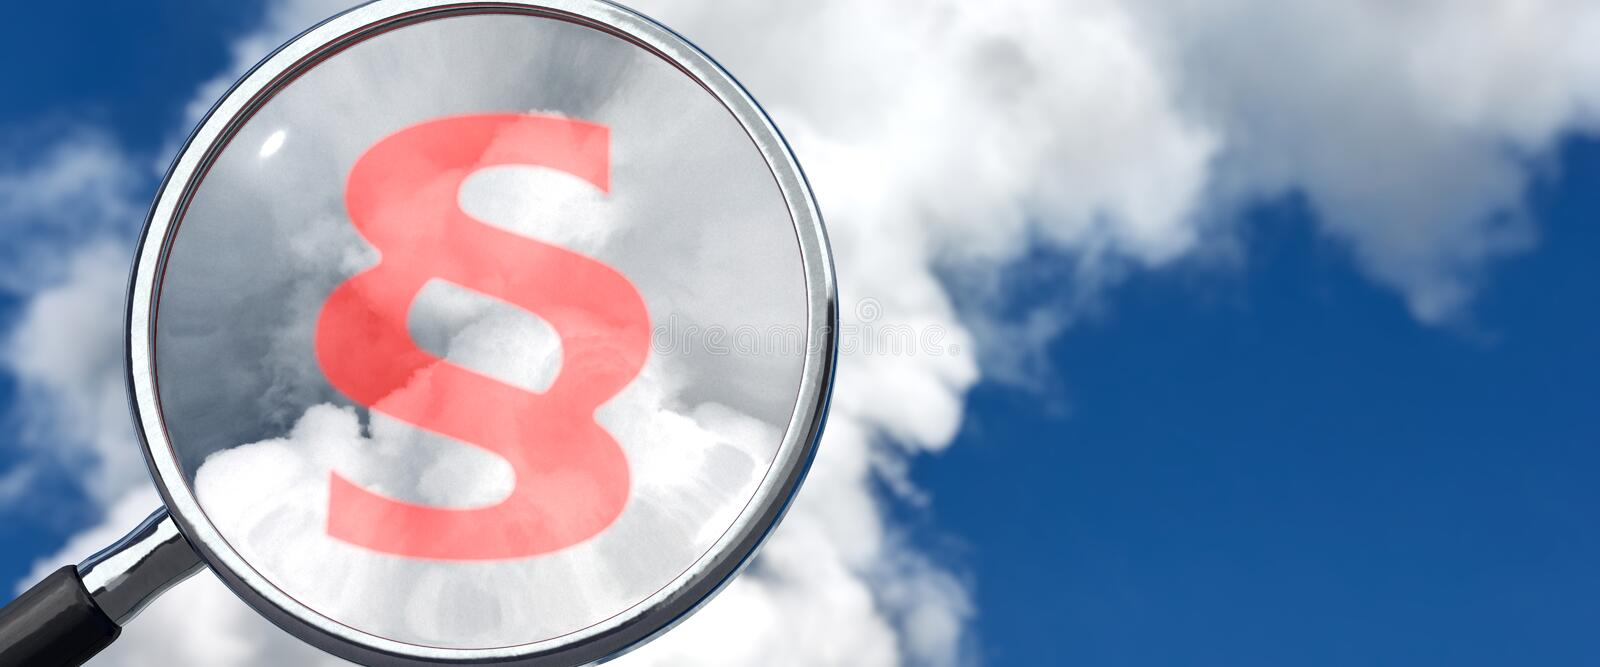 Emissions and law. Magnifying glass with paragraphic symbol and blue sky with emissions in background royalty free stock photography